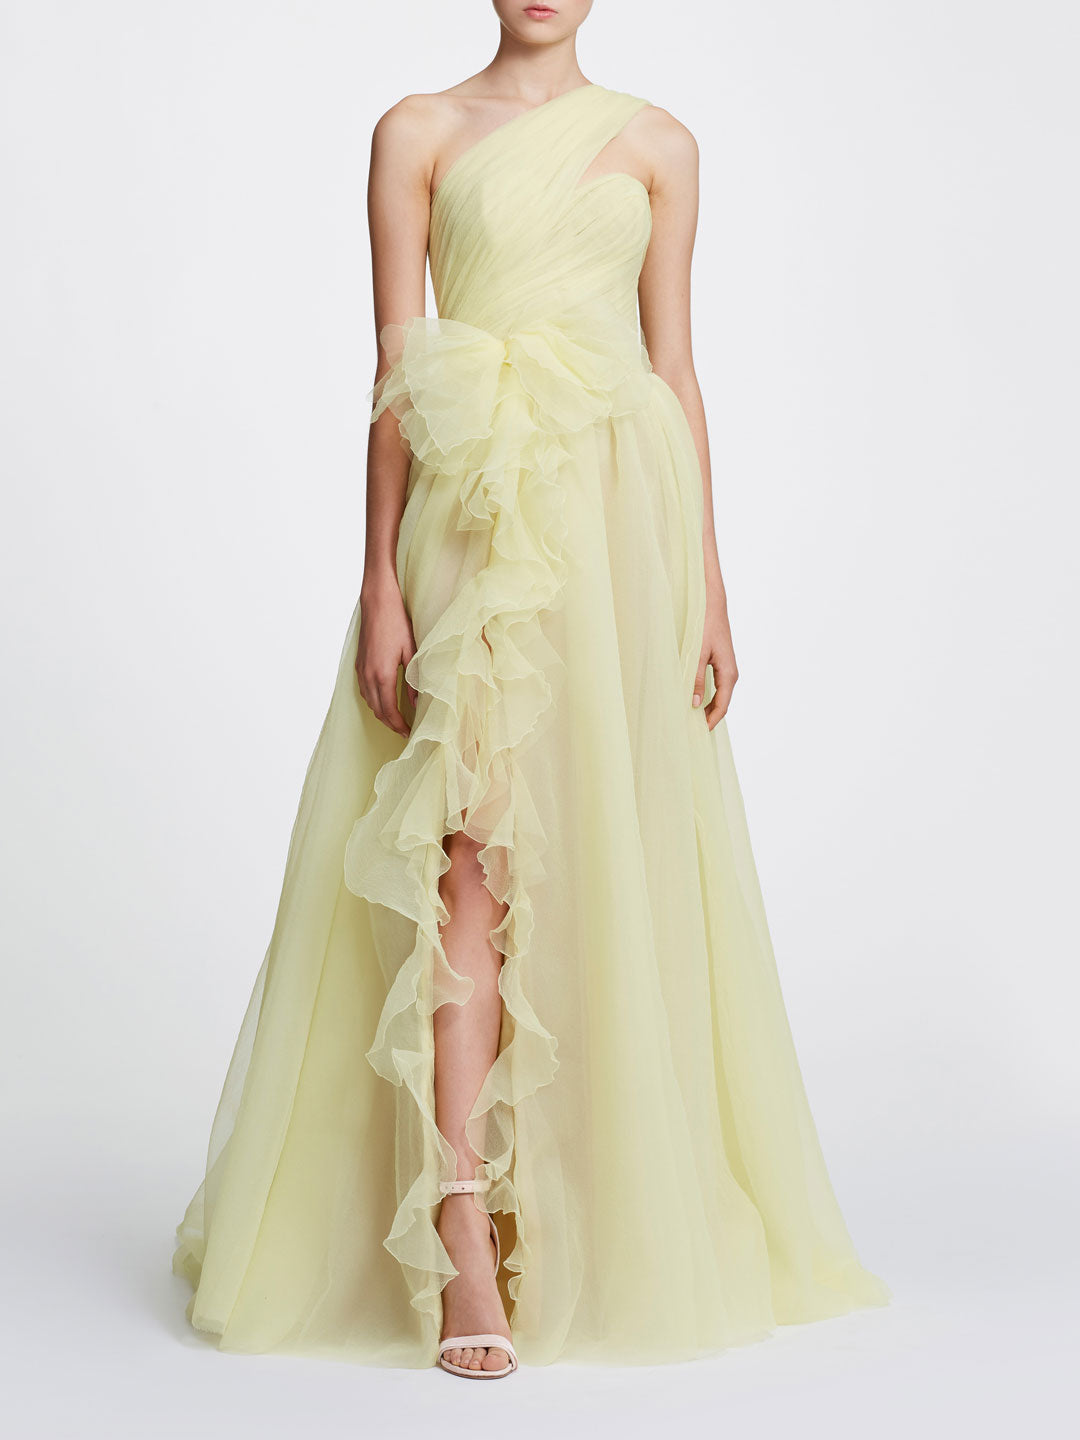 One shoulder gown with front slit detail